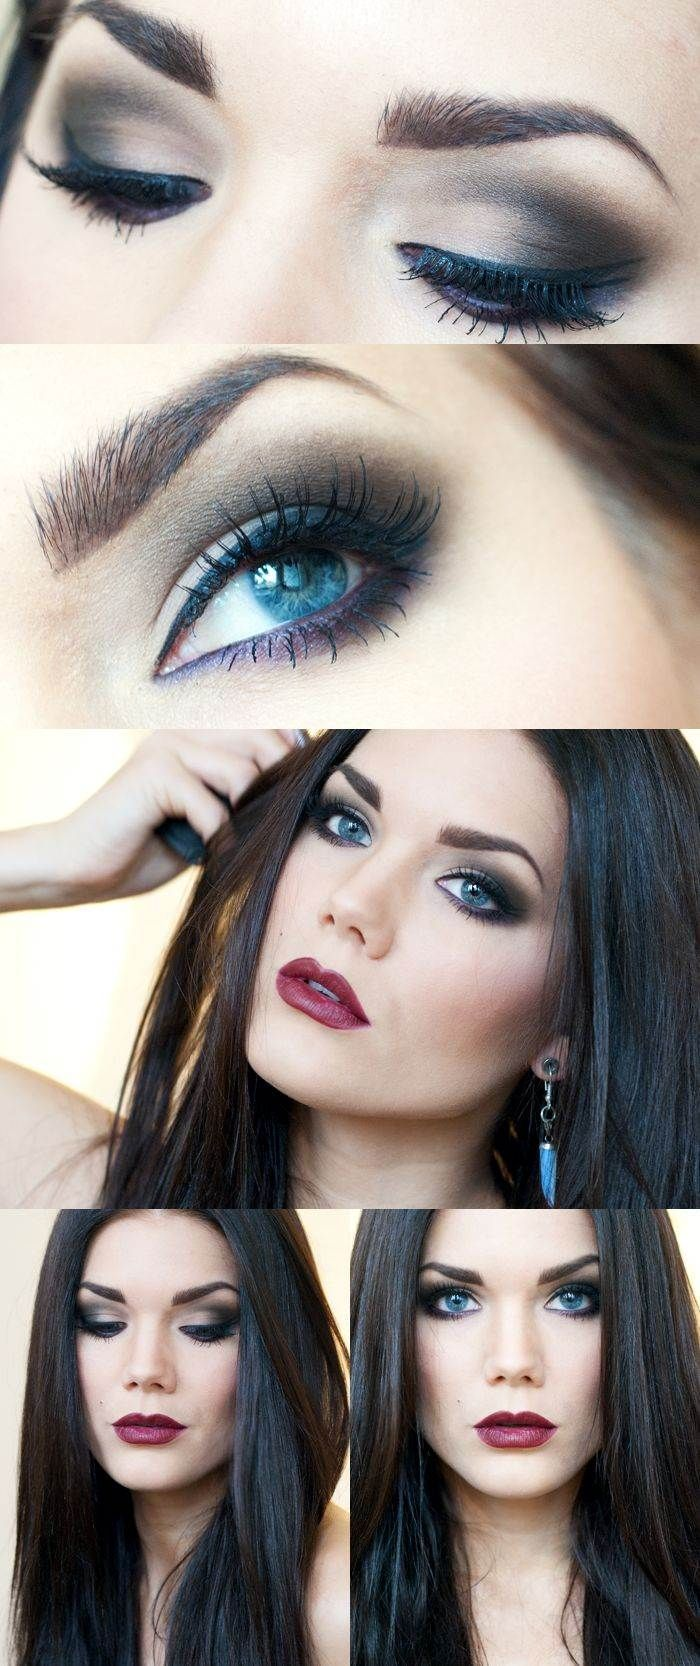 Pin by Evette Ford on Makeup  Pinterest  Eye makeup tutorials